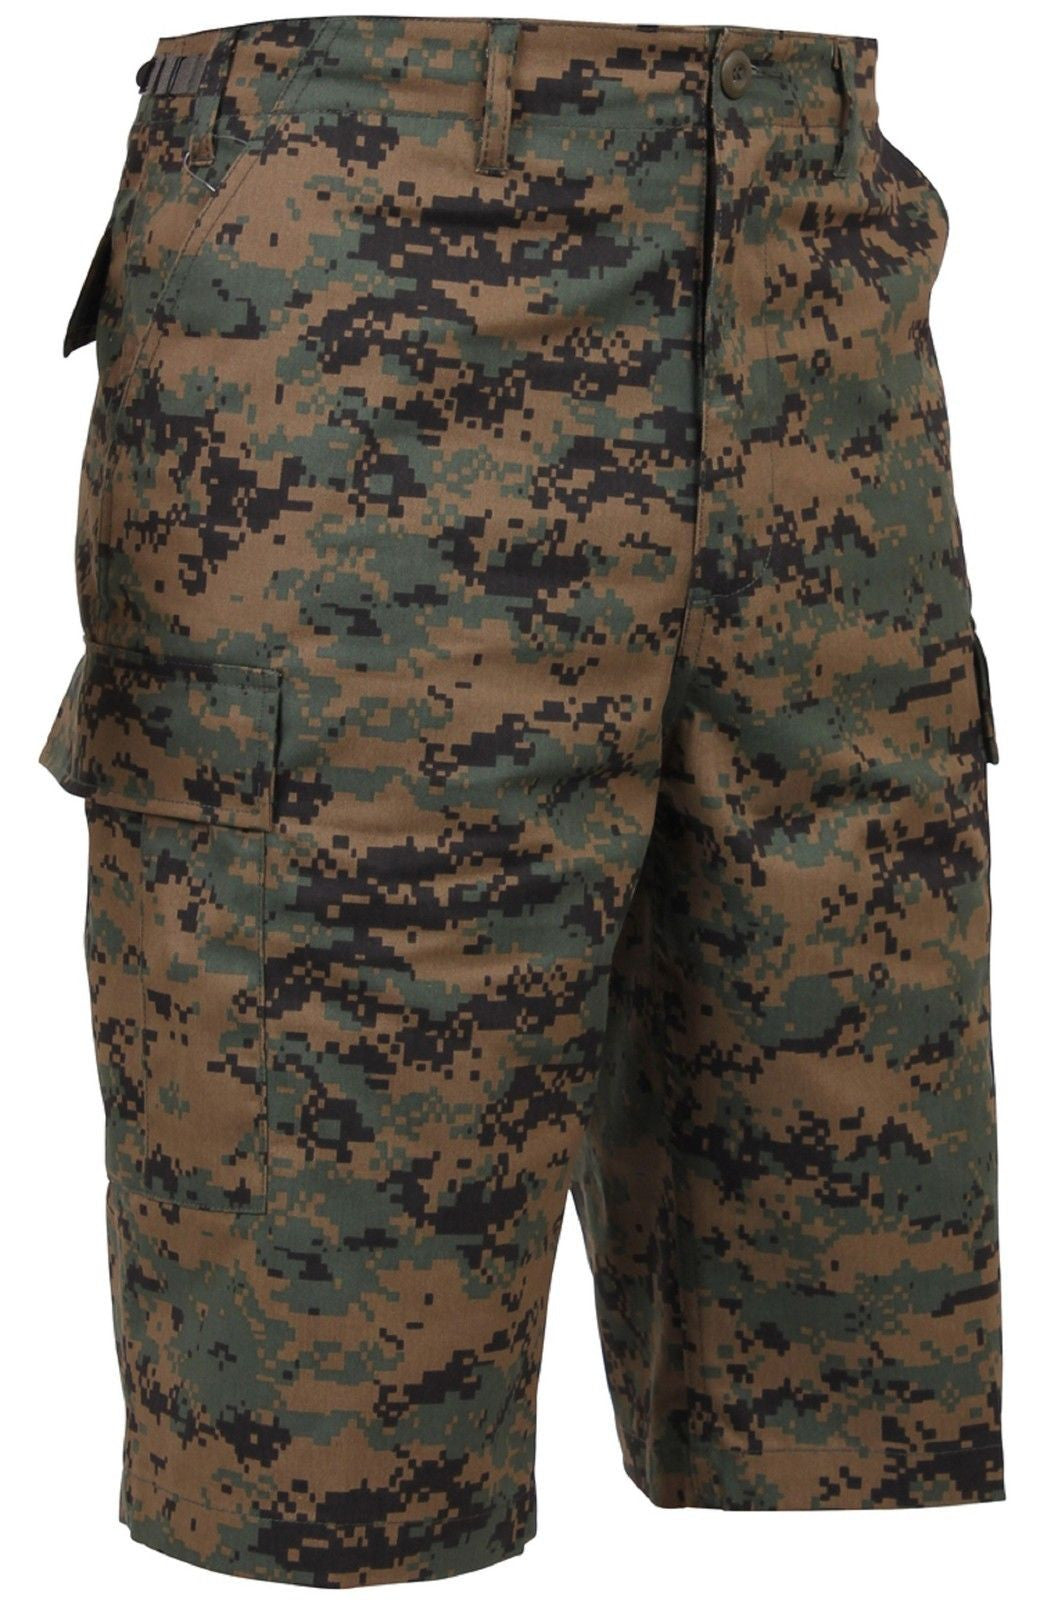 Sizes: L to 3XL CARGO SHORTS Digital Camouflage